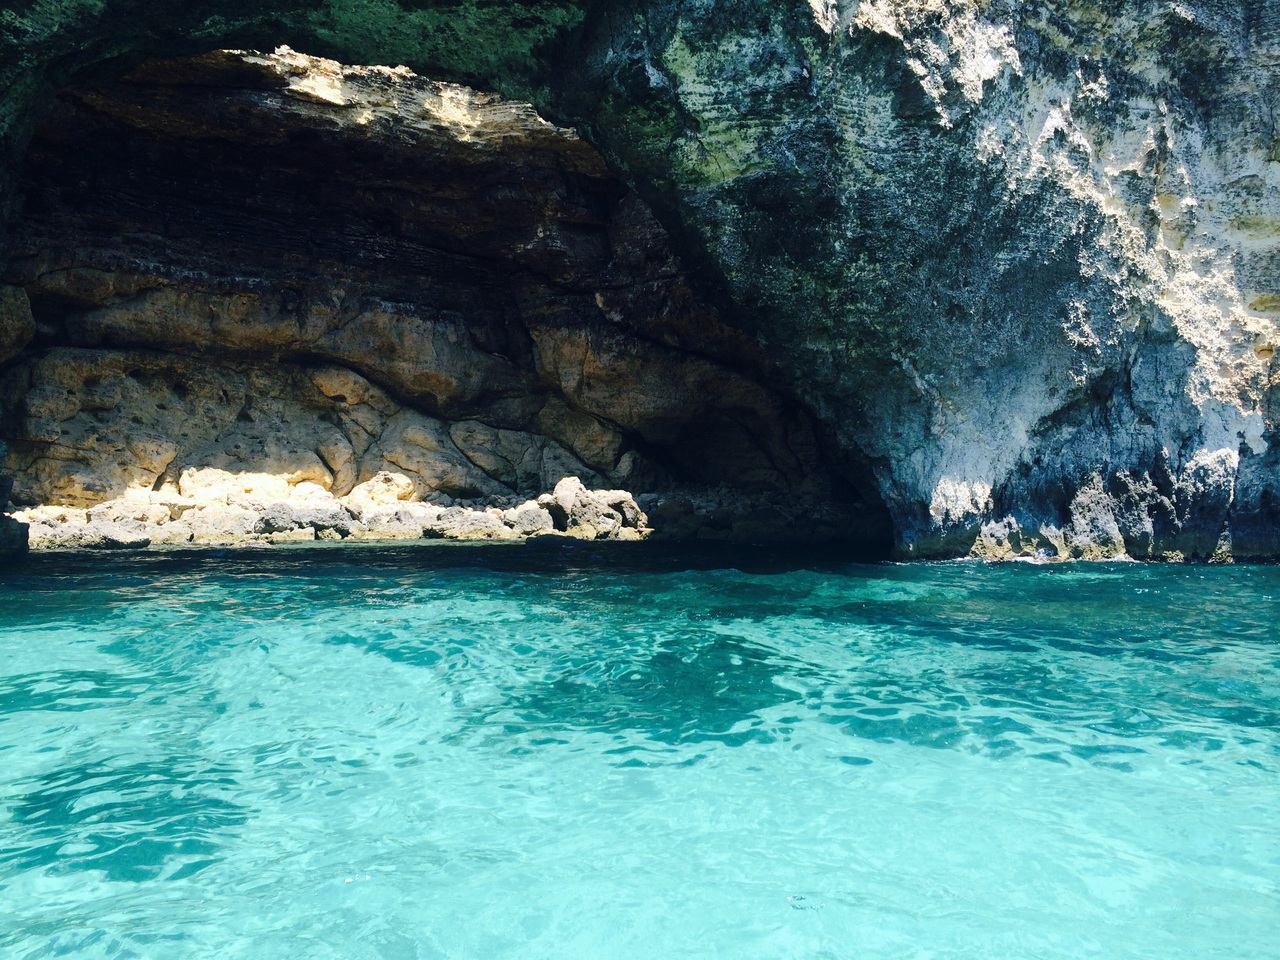 beach, cave, caves, europa, europe, malta, travel, traveling, water, resmål, sts